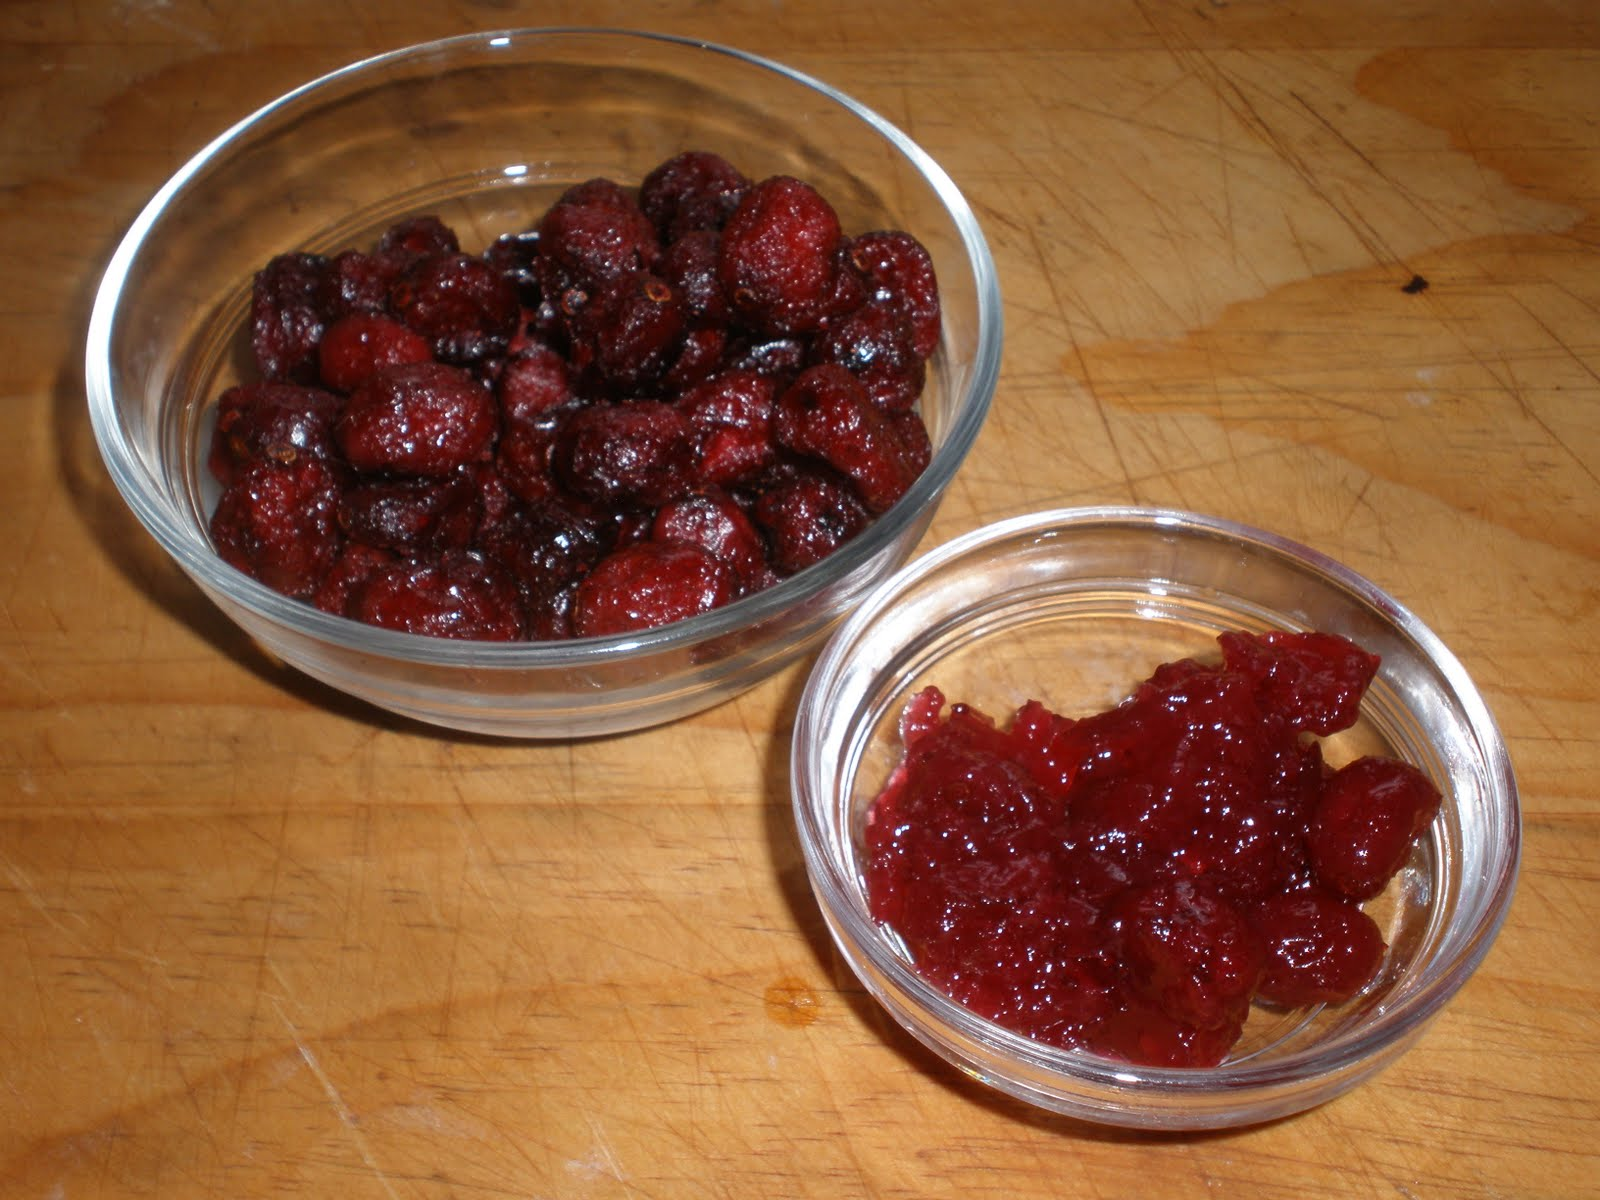 ... Chef ™: Turkey and Cranberry Meatballs with Cranberry Port Sauce